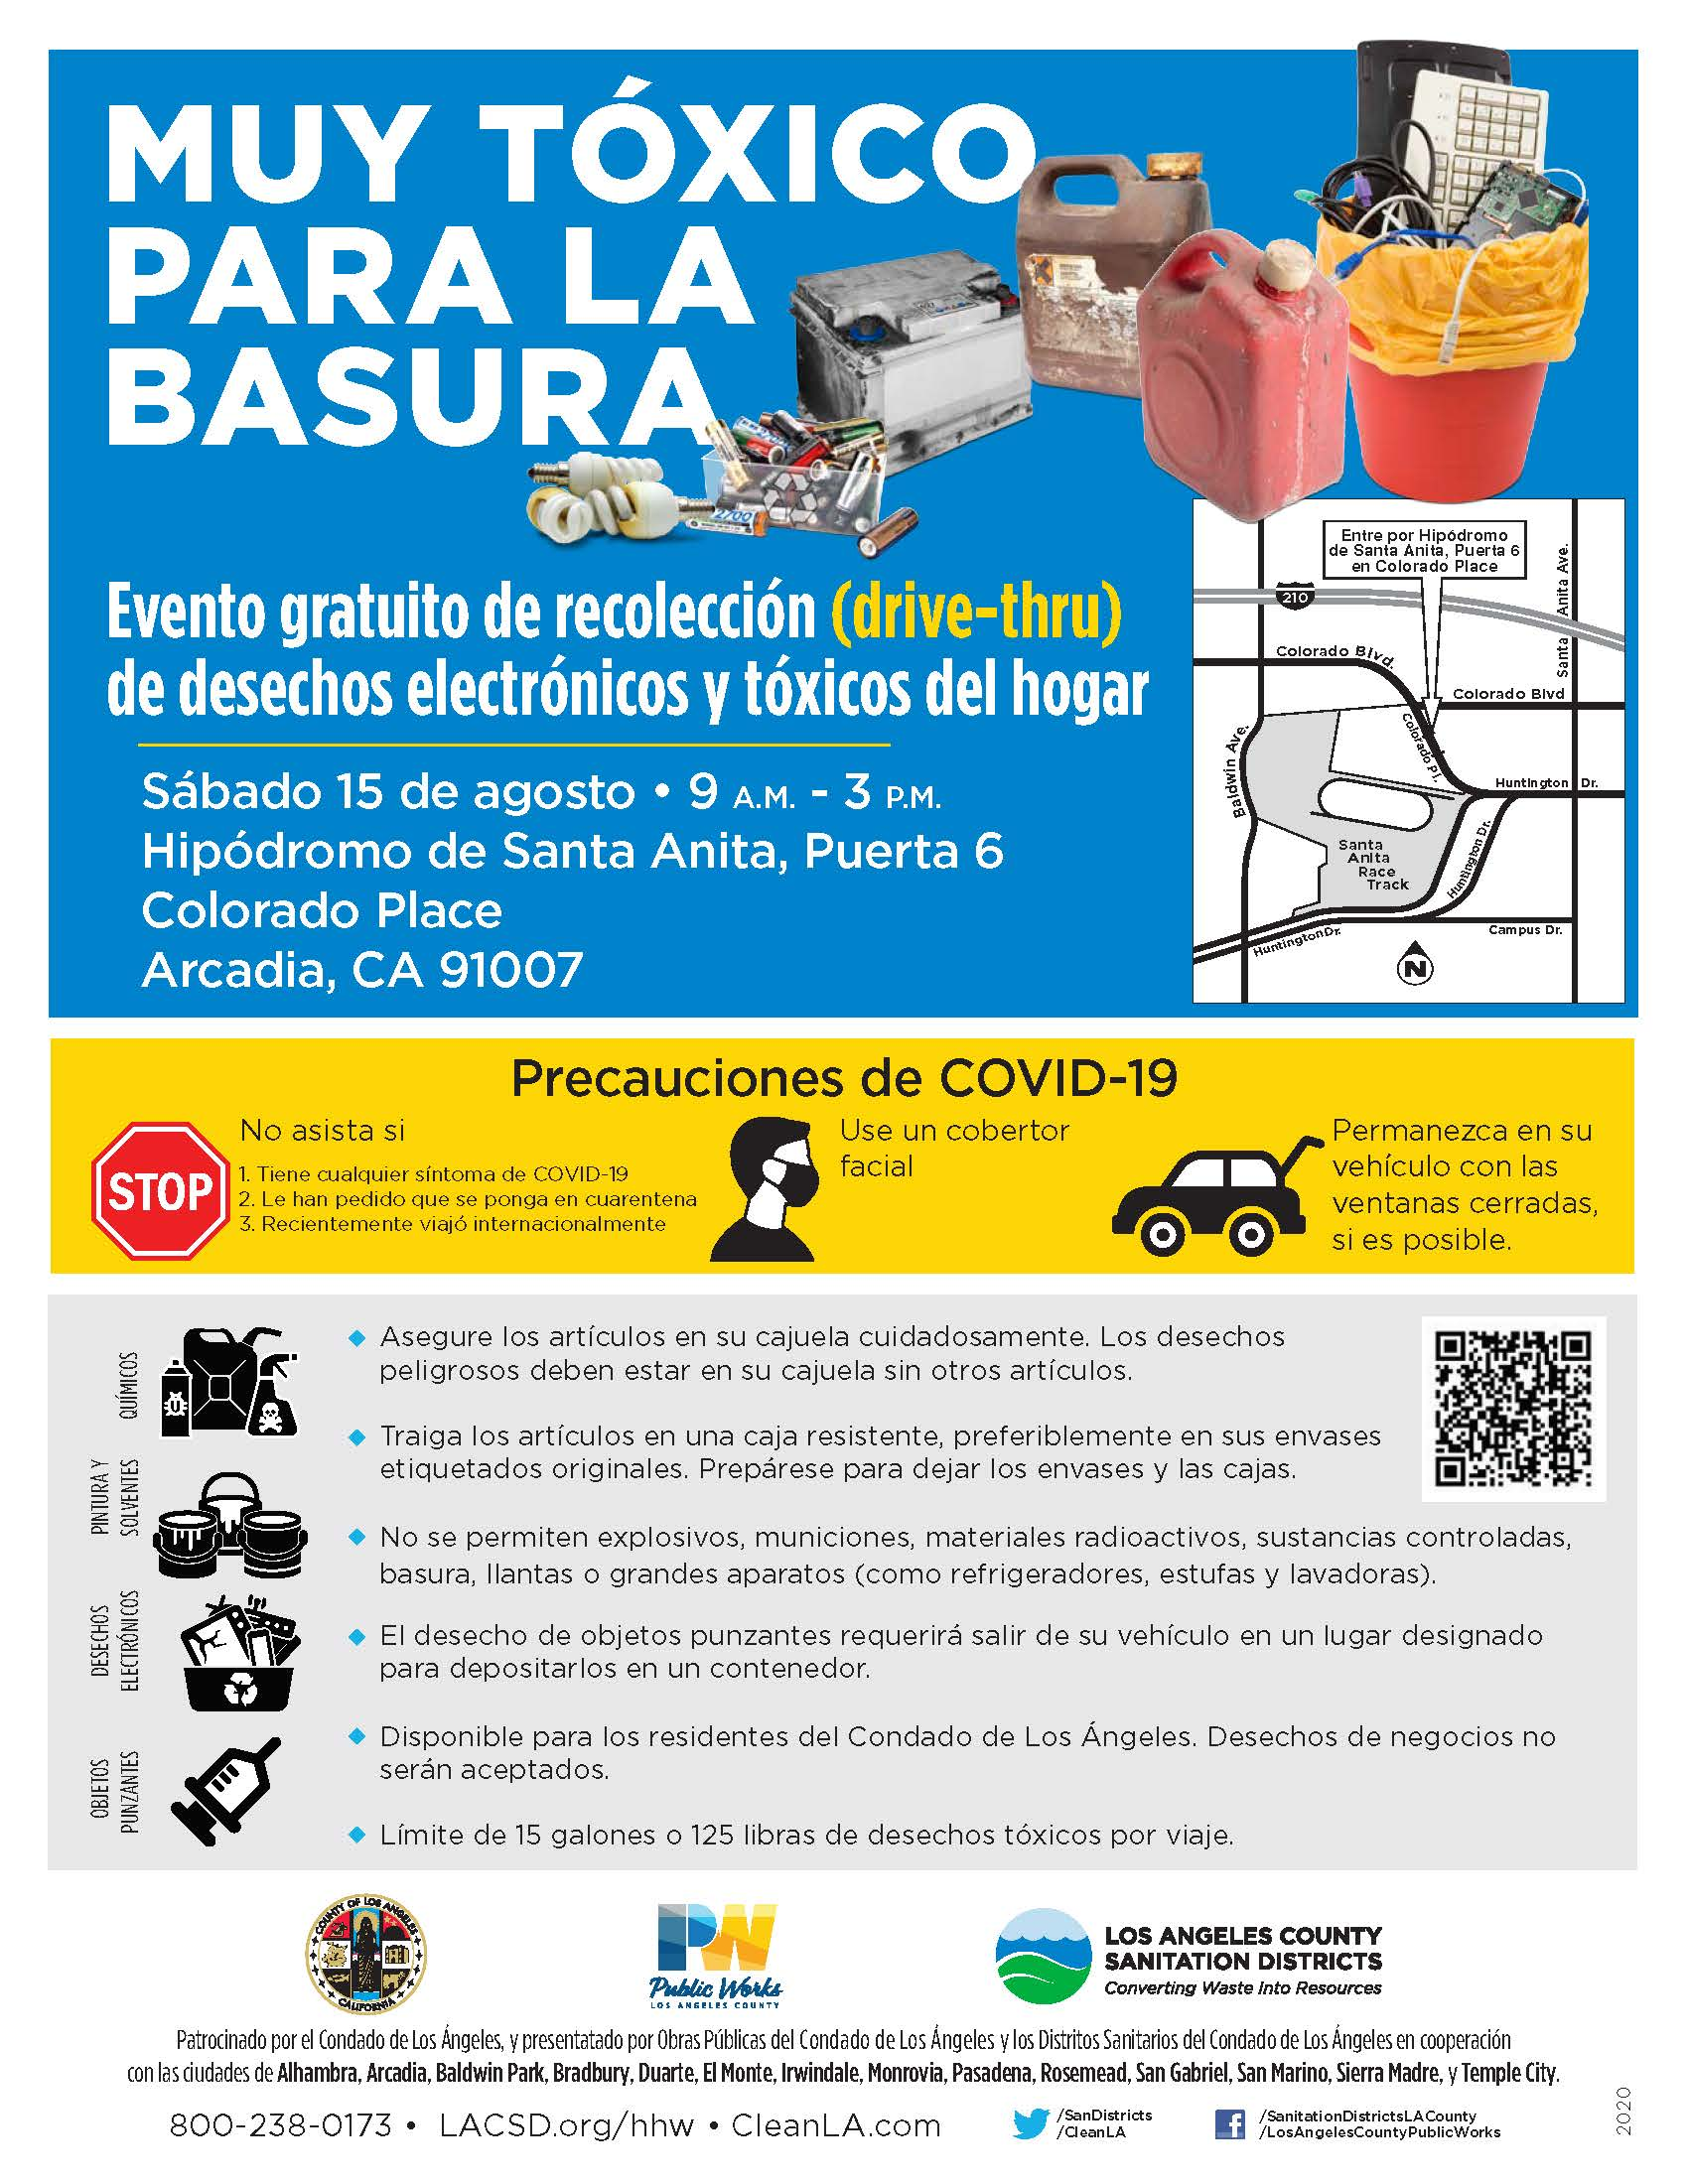 Spanish flyer of event